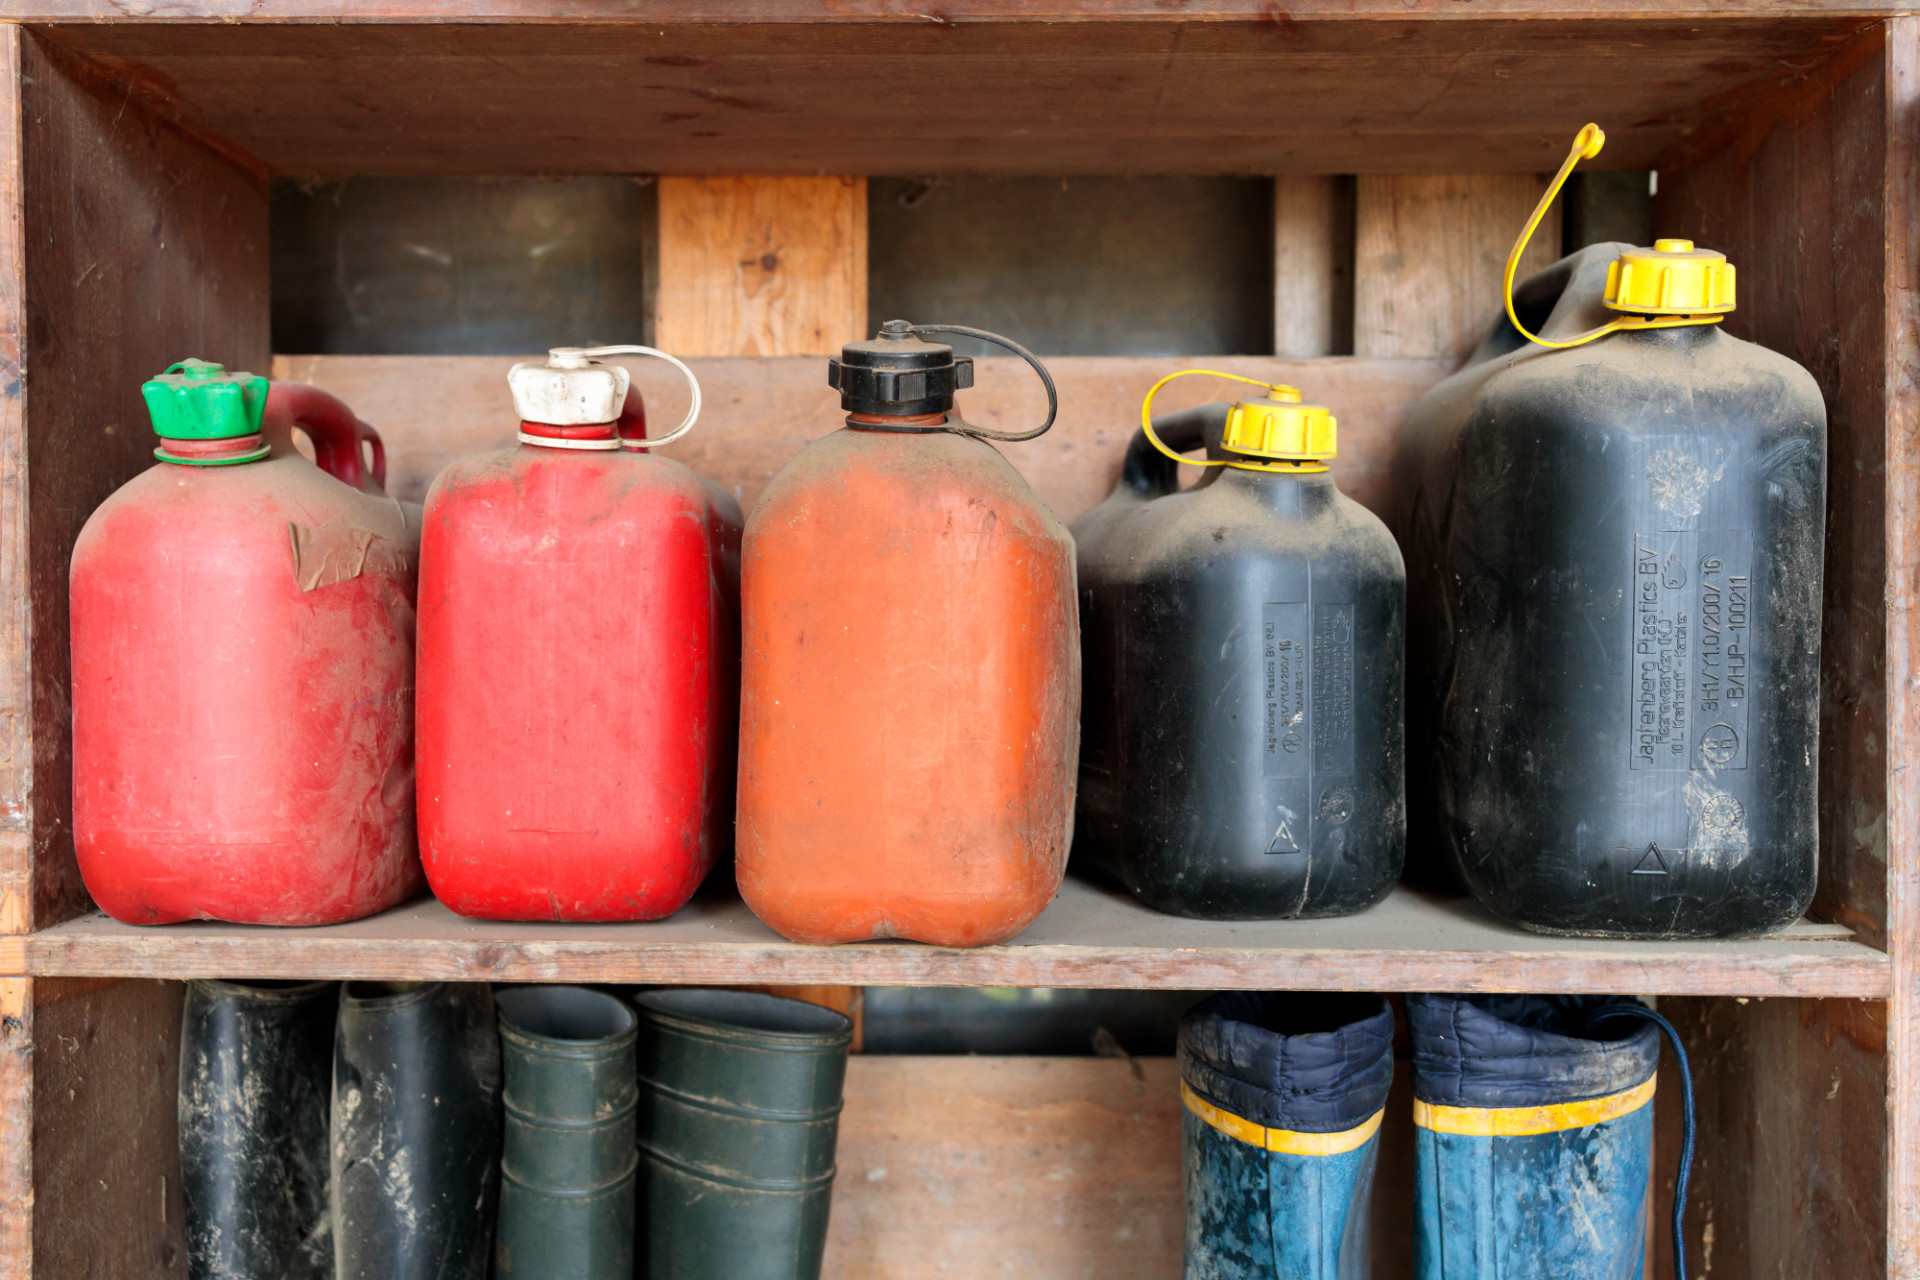 Old petrol cans on a shelf